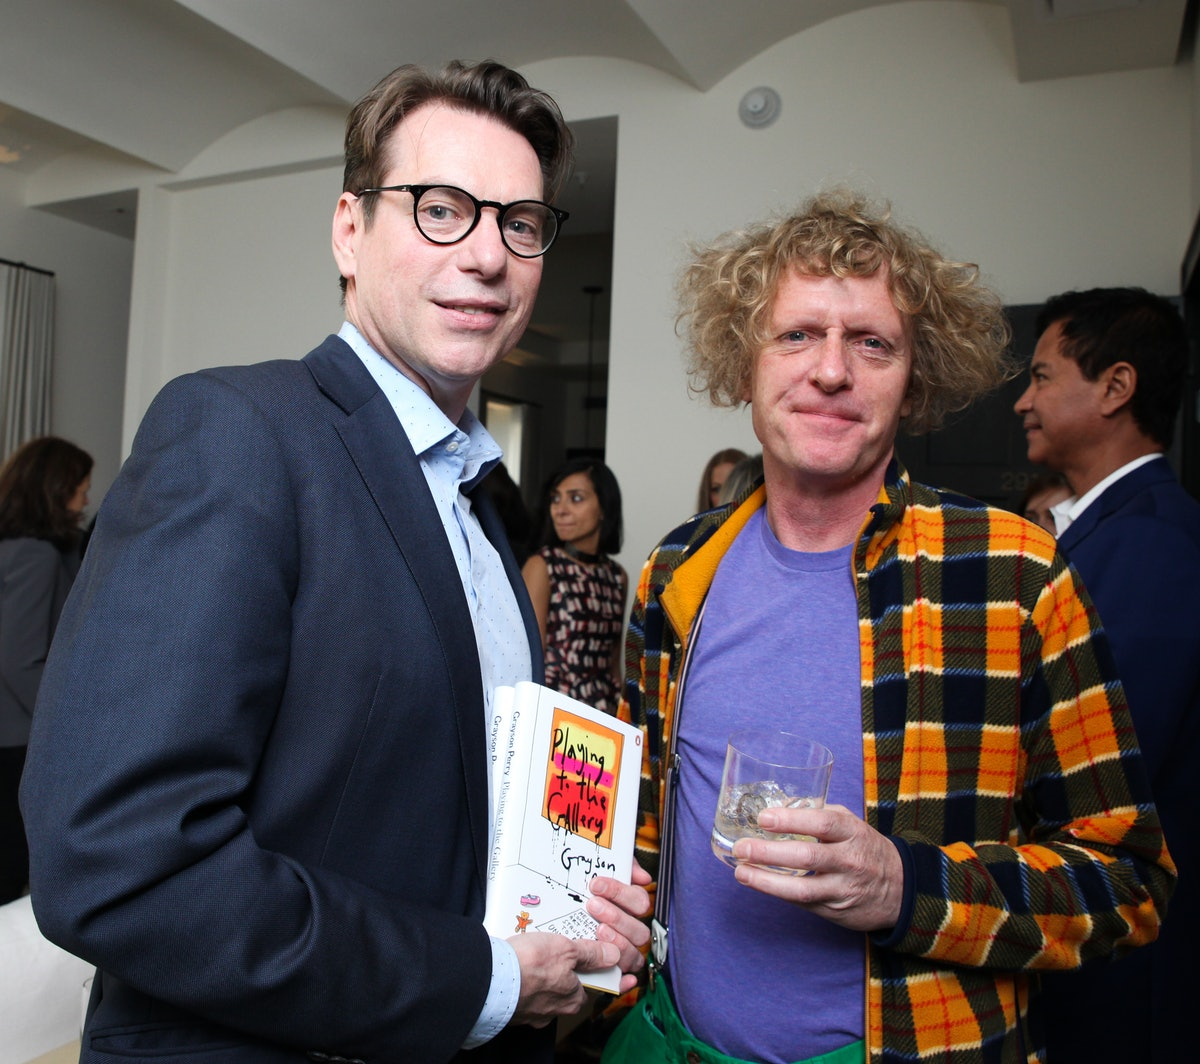 David Maupin and Grayson Perry